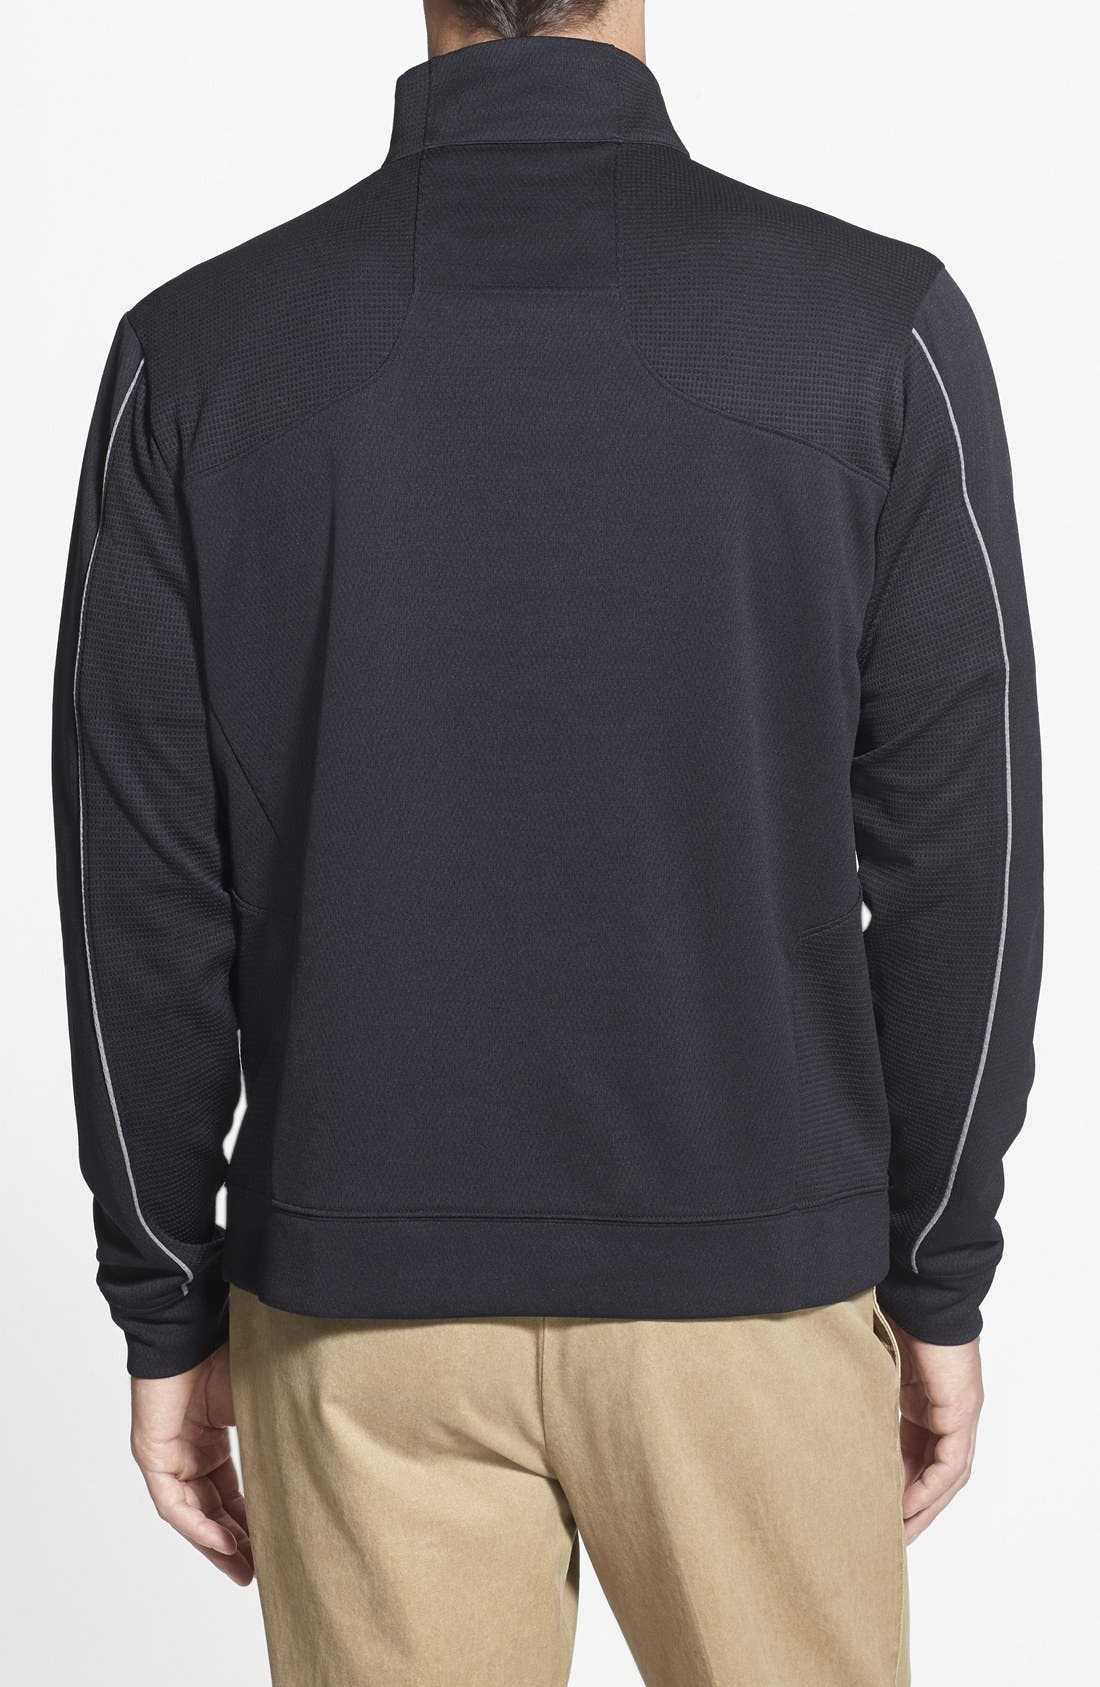 Cleveland Browns - Edge DryTec Moisture Wicking Half Zip Pullover,                             Alternate thumbnail 2, color,                             001